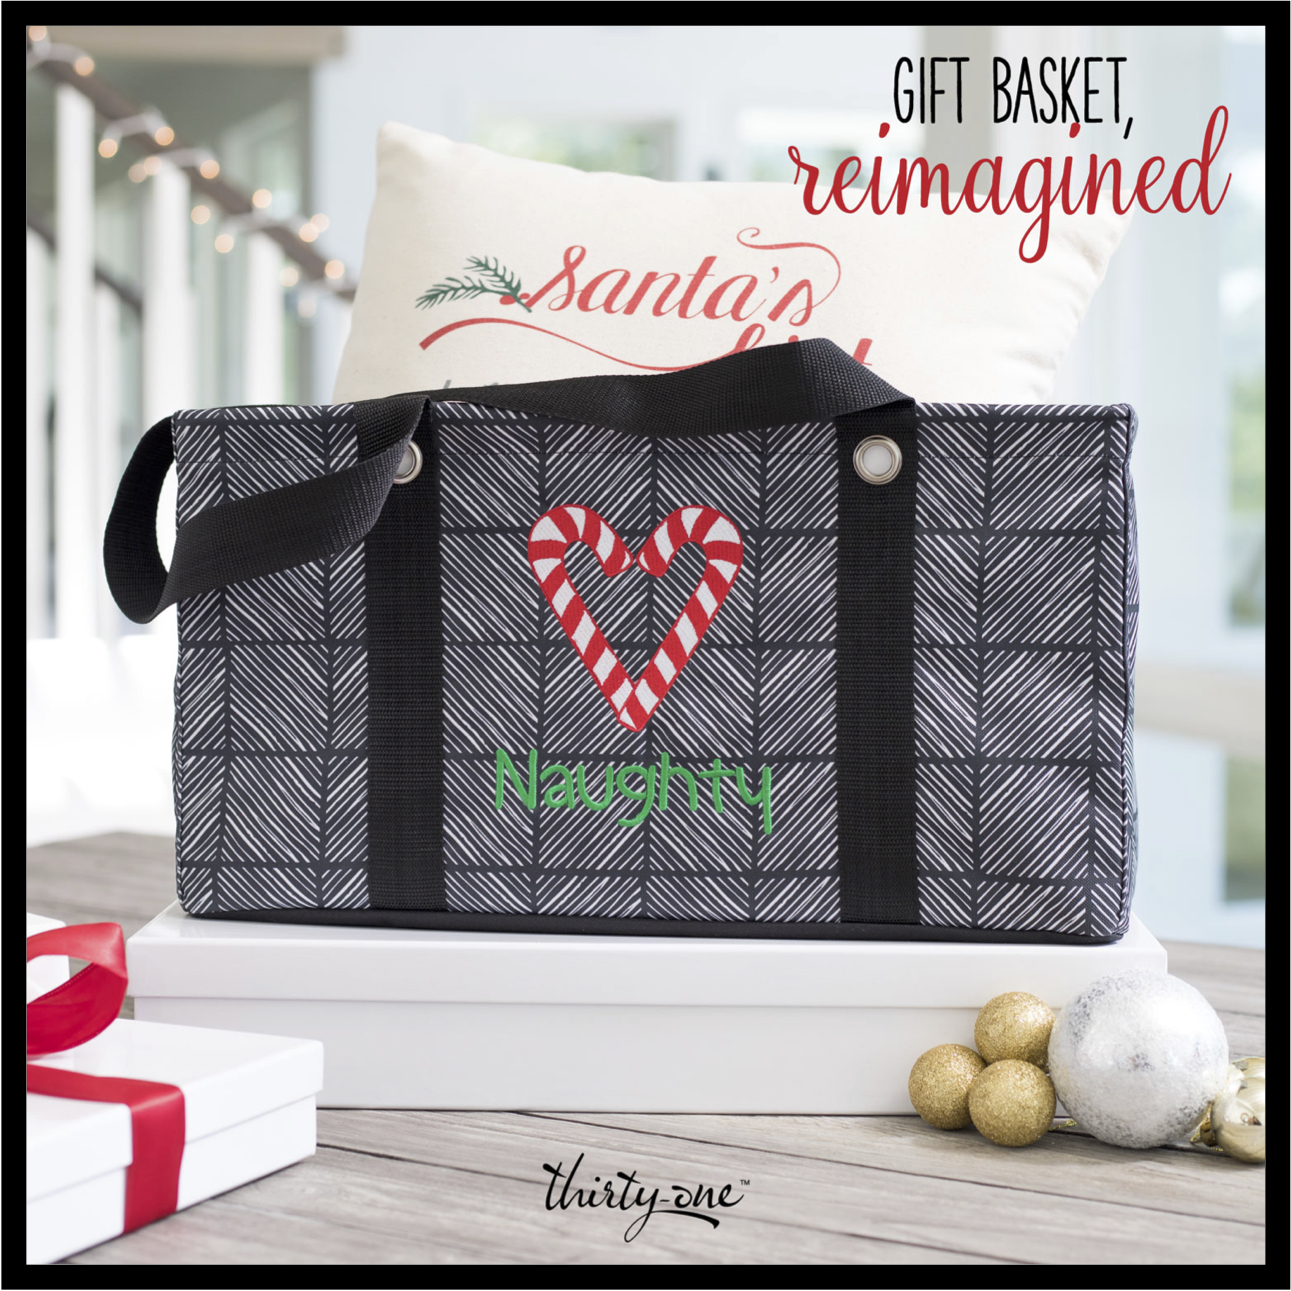 Thirty one november customer special 2014 - Thirty One Gifts Reimagine